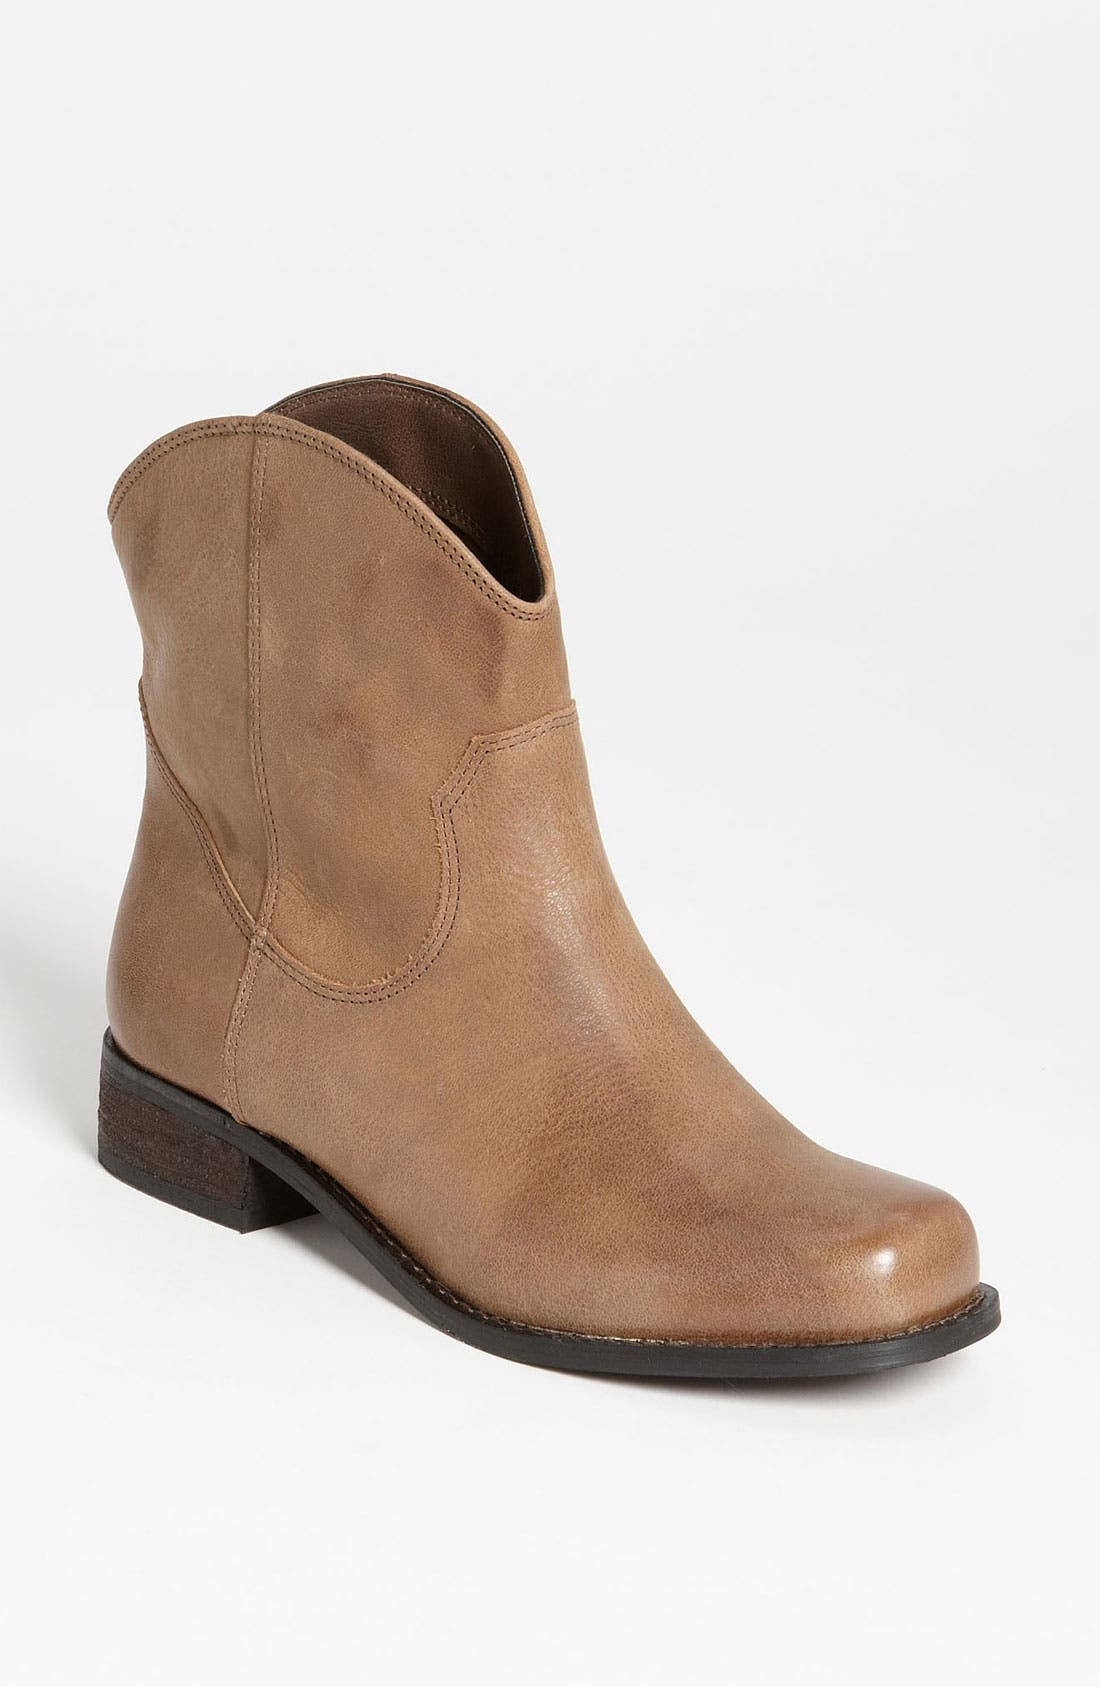 Alternate Image 1 Selected - Jessica Simpson 'Cranaby' Boot